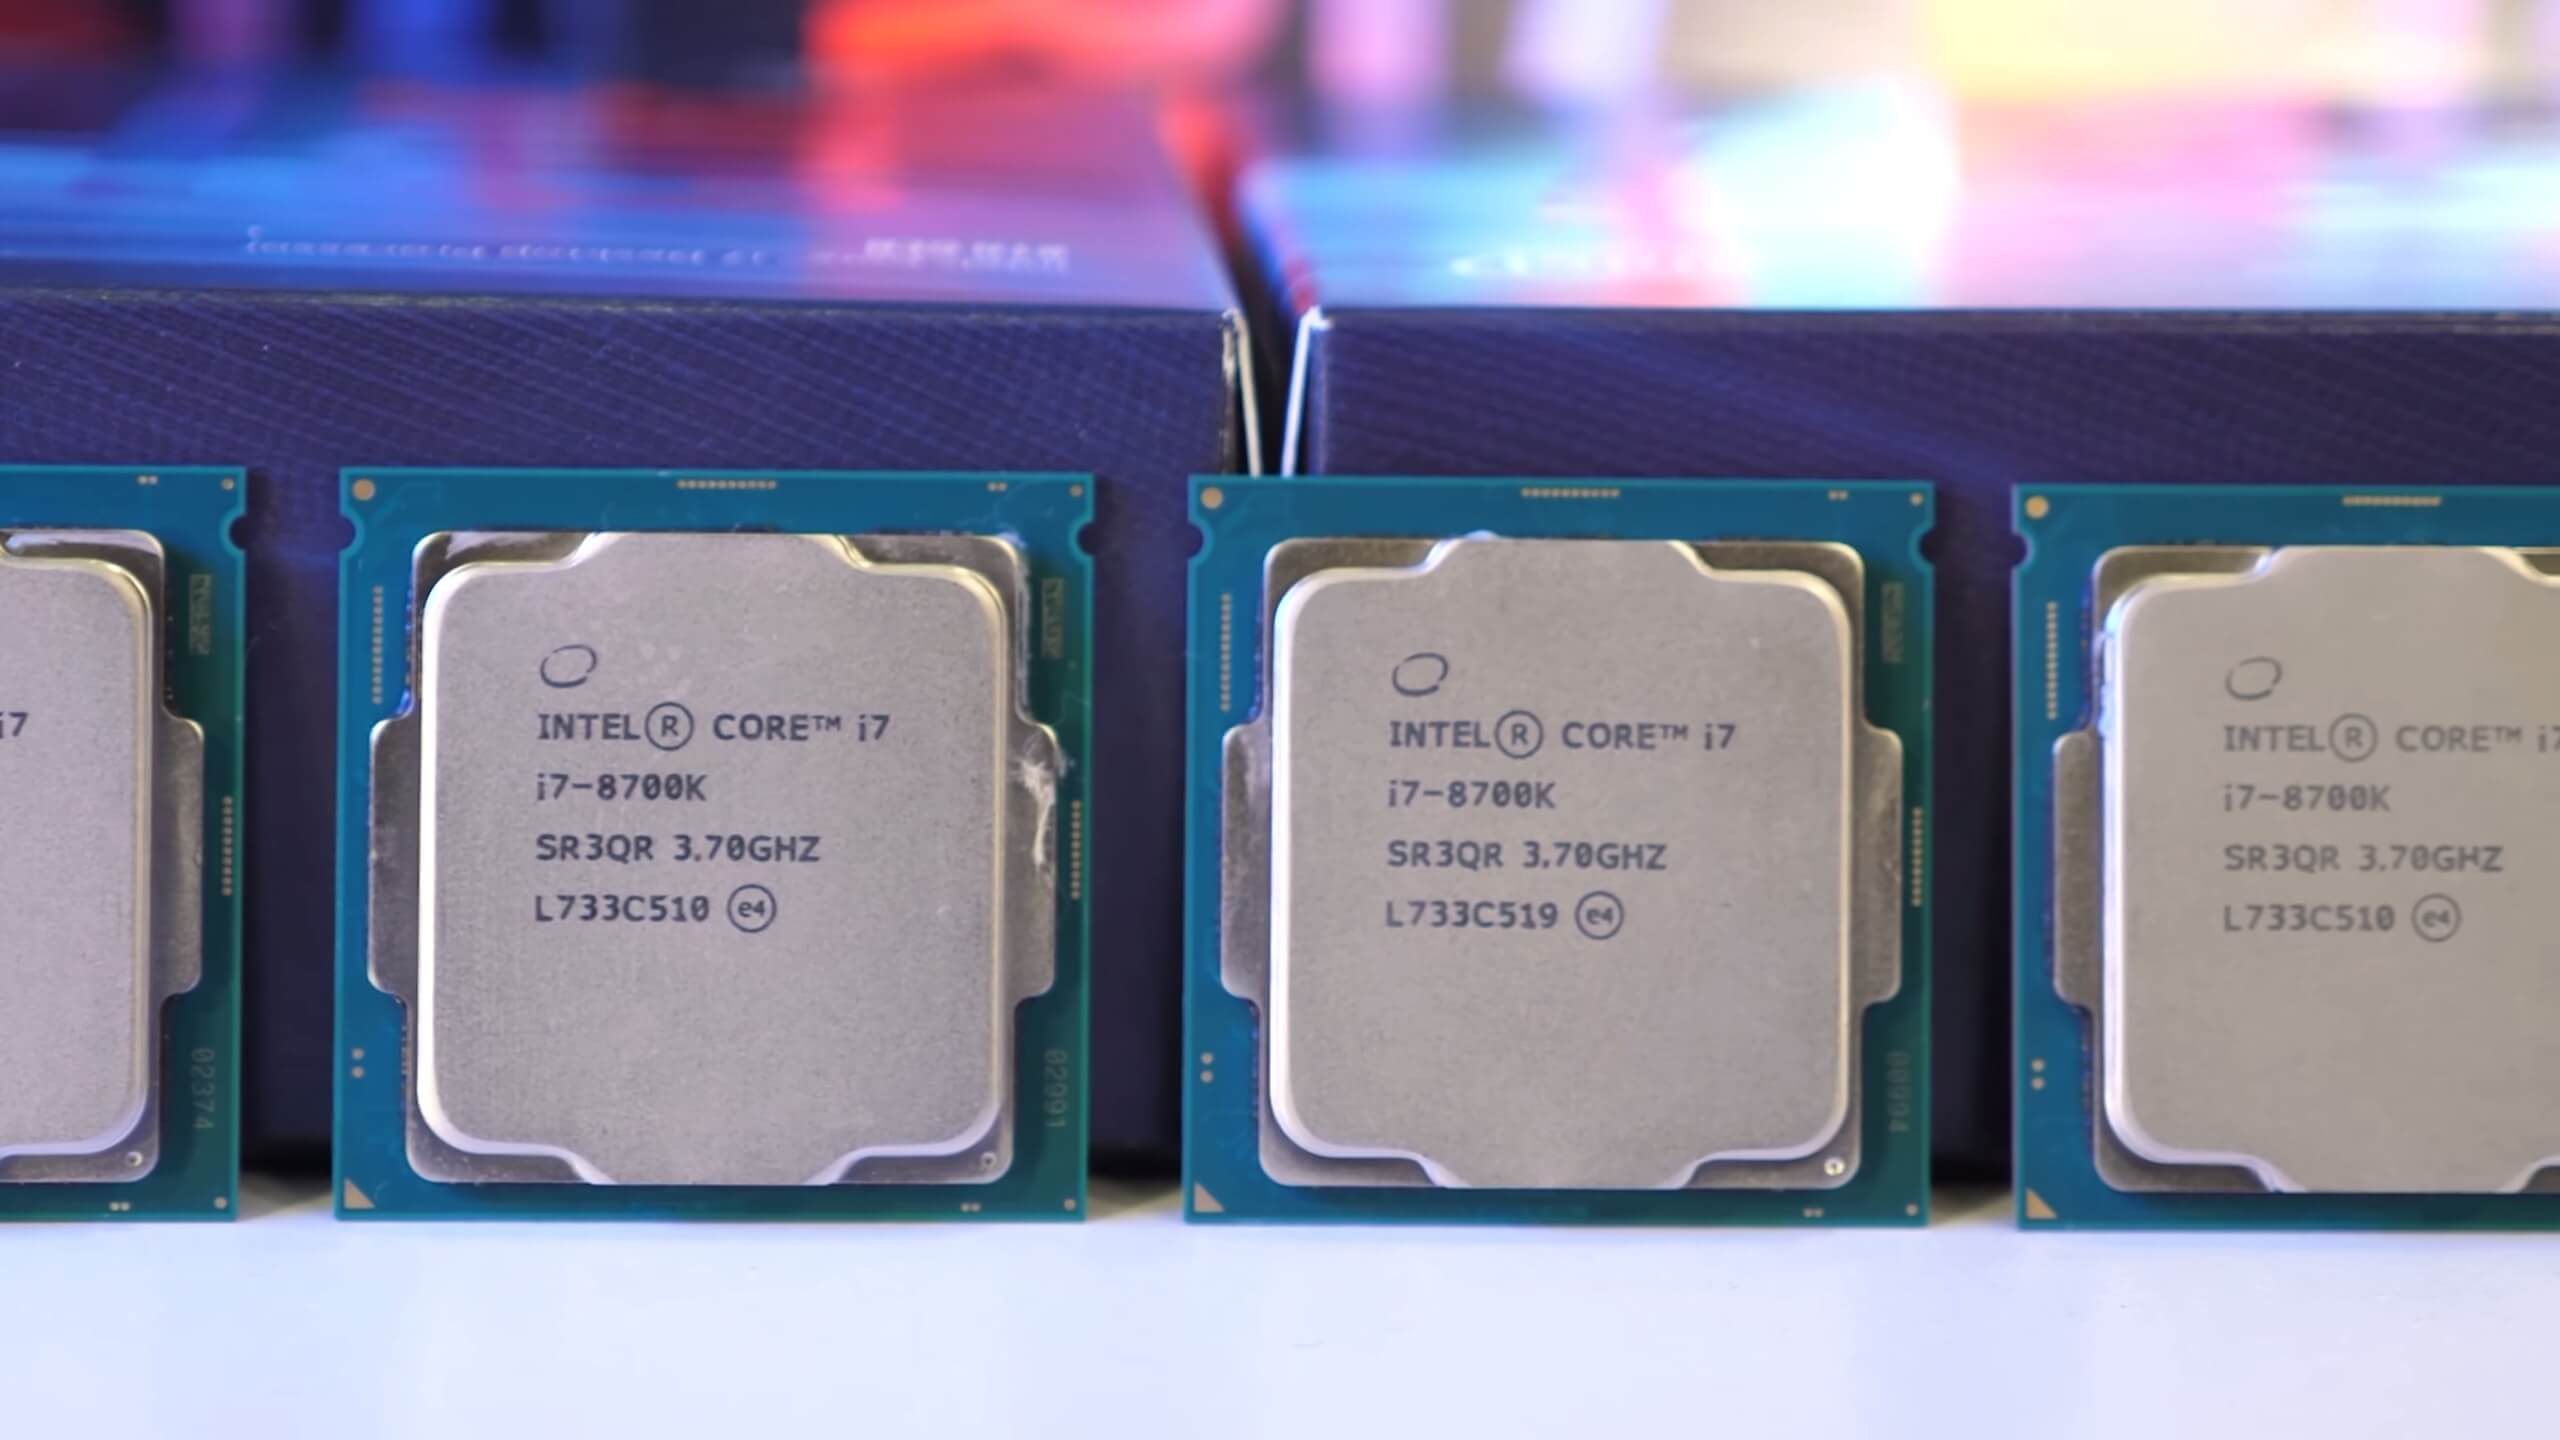 The Old King of Gaming: Intel Core i7-8700K Revisited